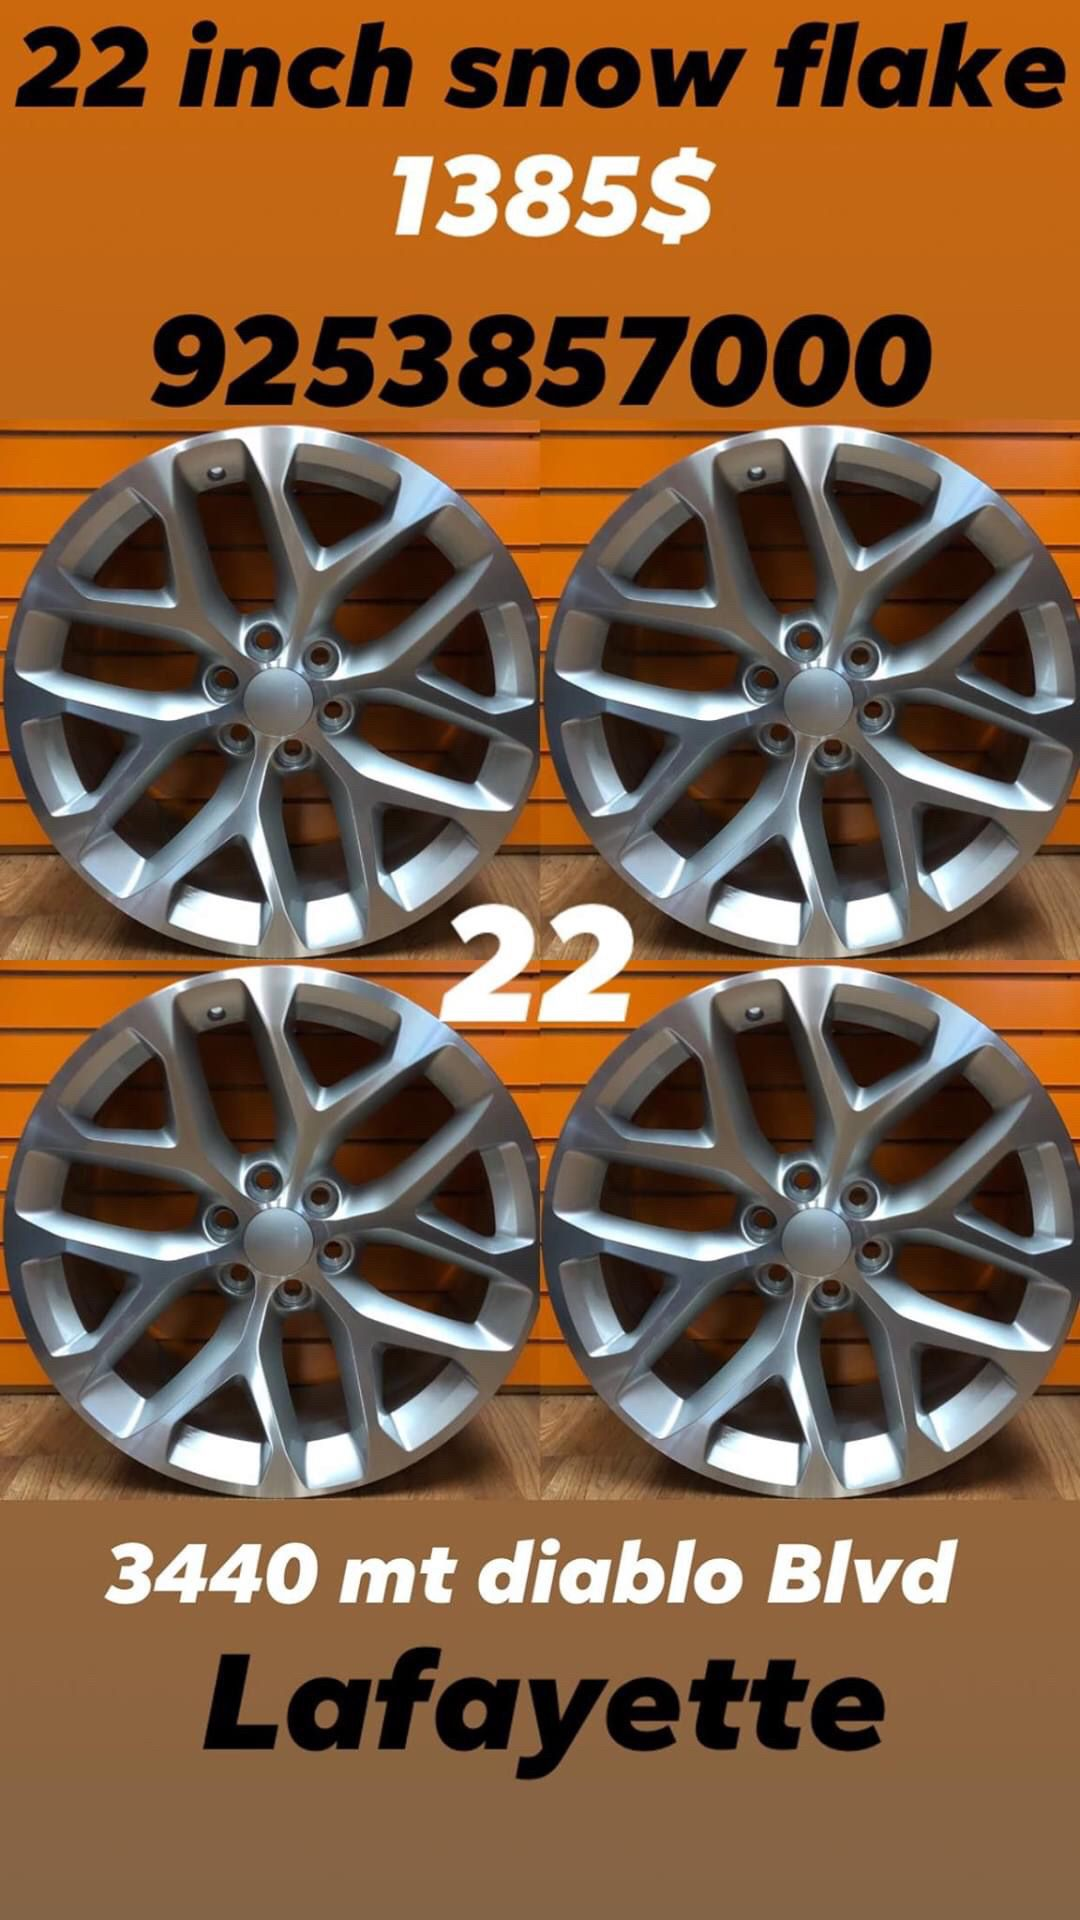 Chevy gmc wheel on sale lowest price in bay areas